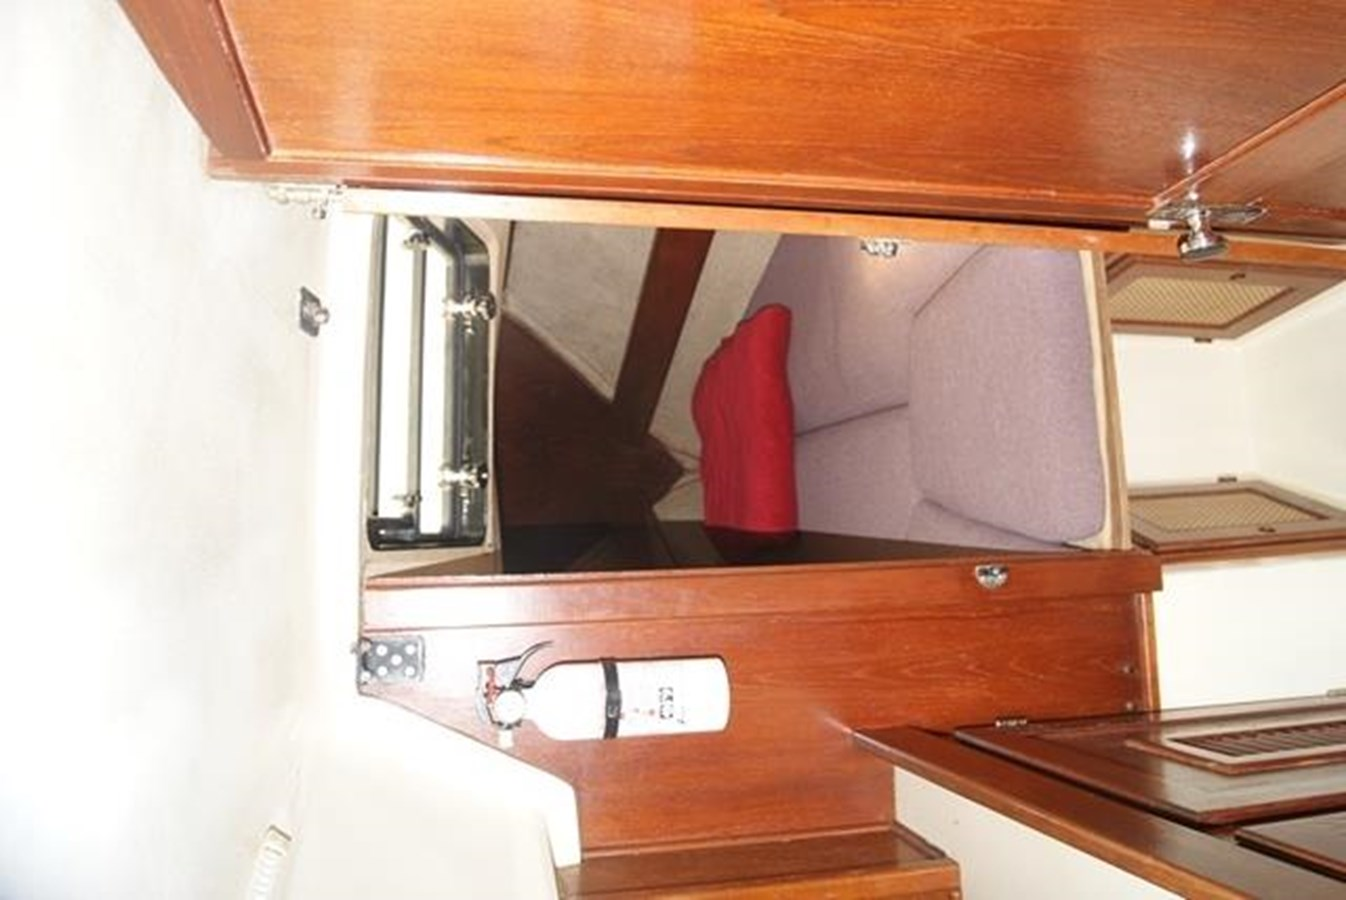 211 V Berth Entrance 1982 SAN JUAN 34 Sloop 2770475